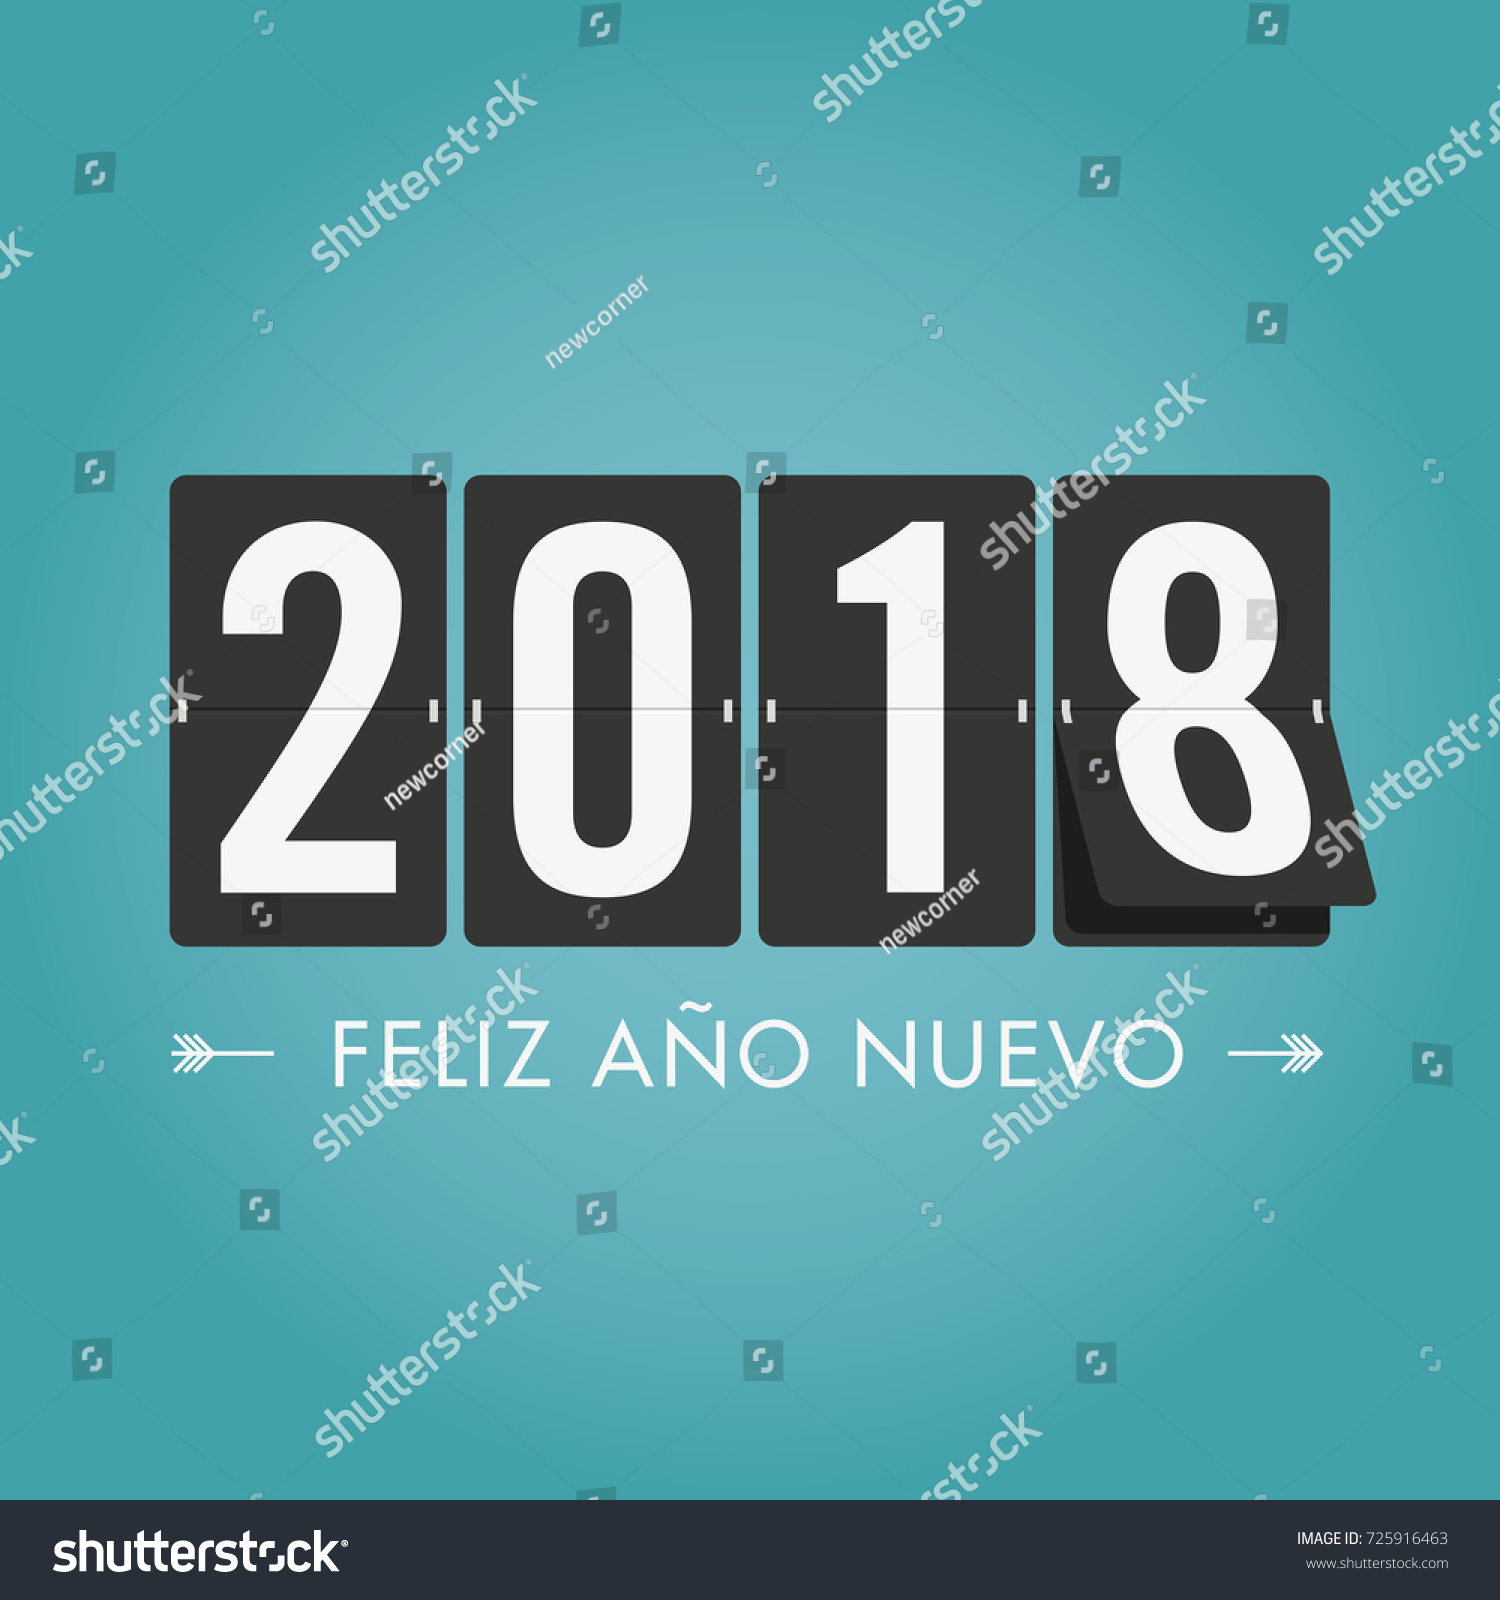 happy new year 2018 mechanical timetable spanish version editable vector design